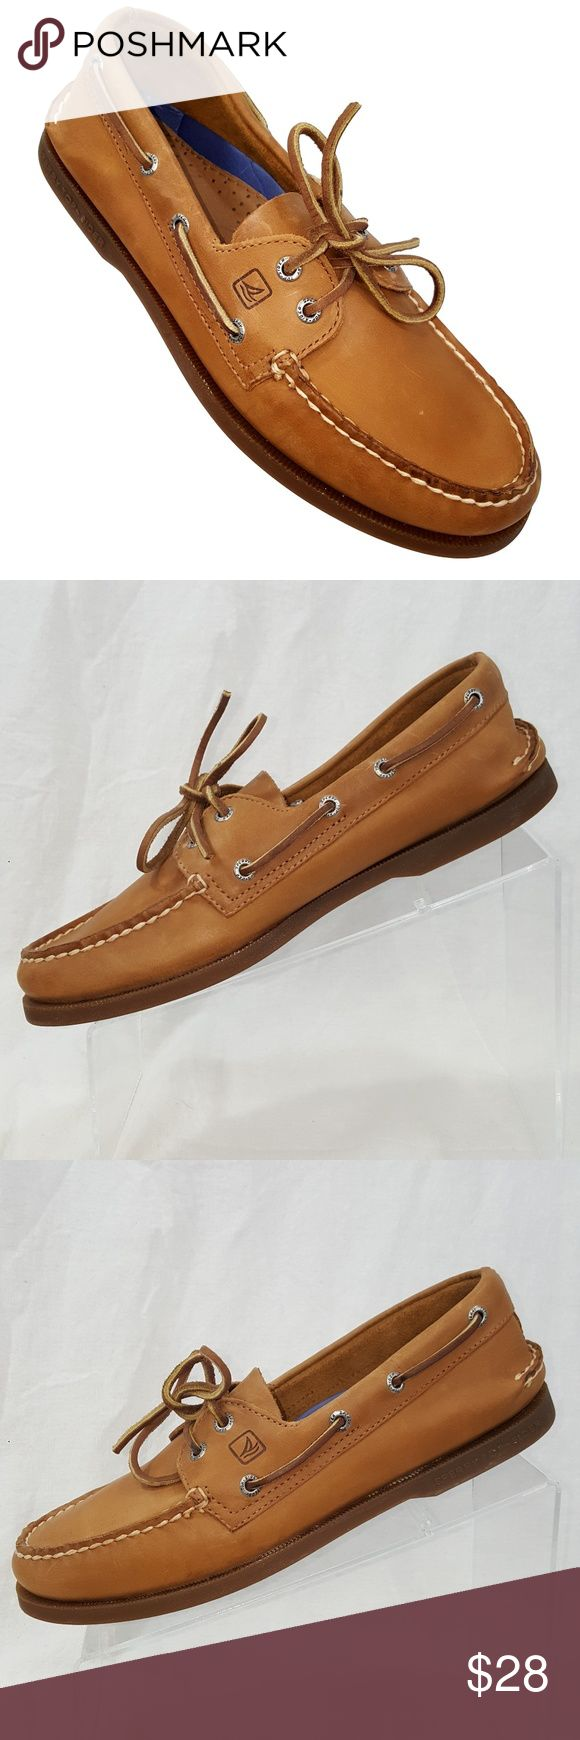 Sperry Top Sider Mens Boat Shoes 9 M Brown Very good used condition. Light scuffing may be present in a few spots. May need light cleaning Sperry Shoes Boat Shoes